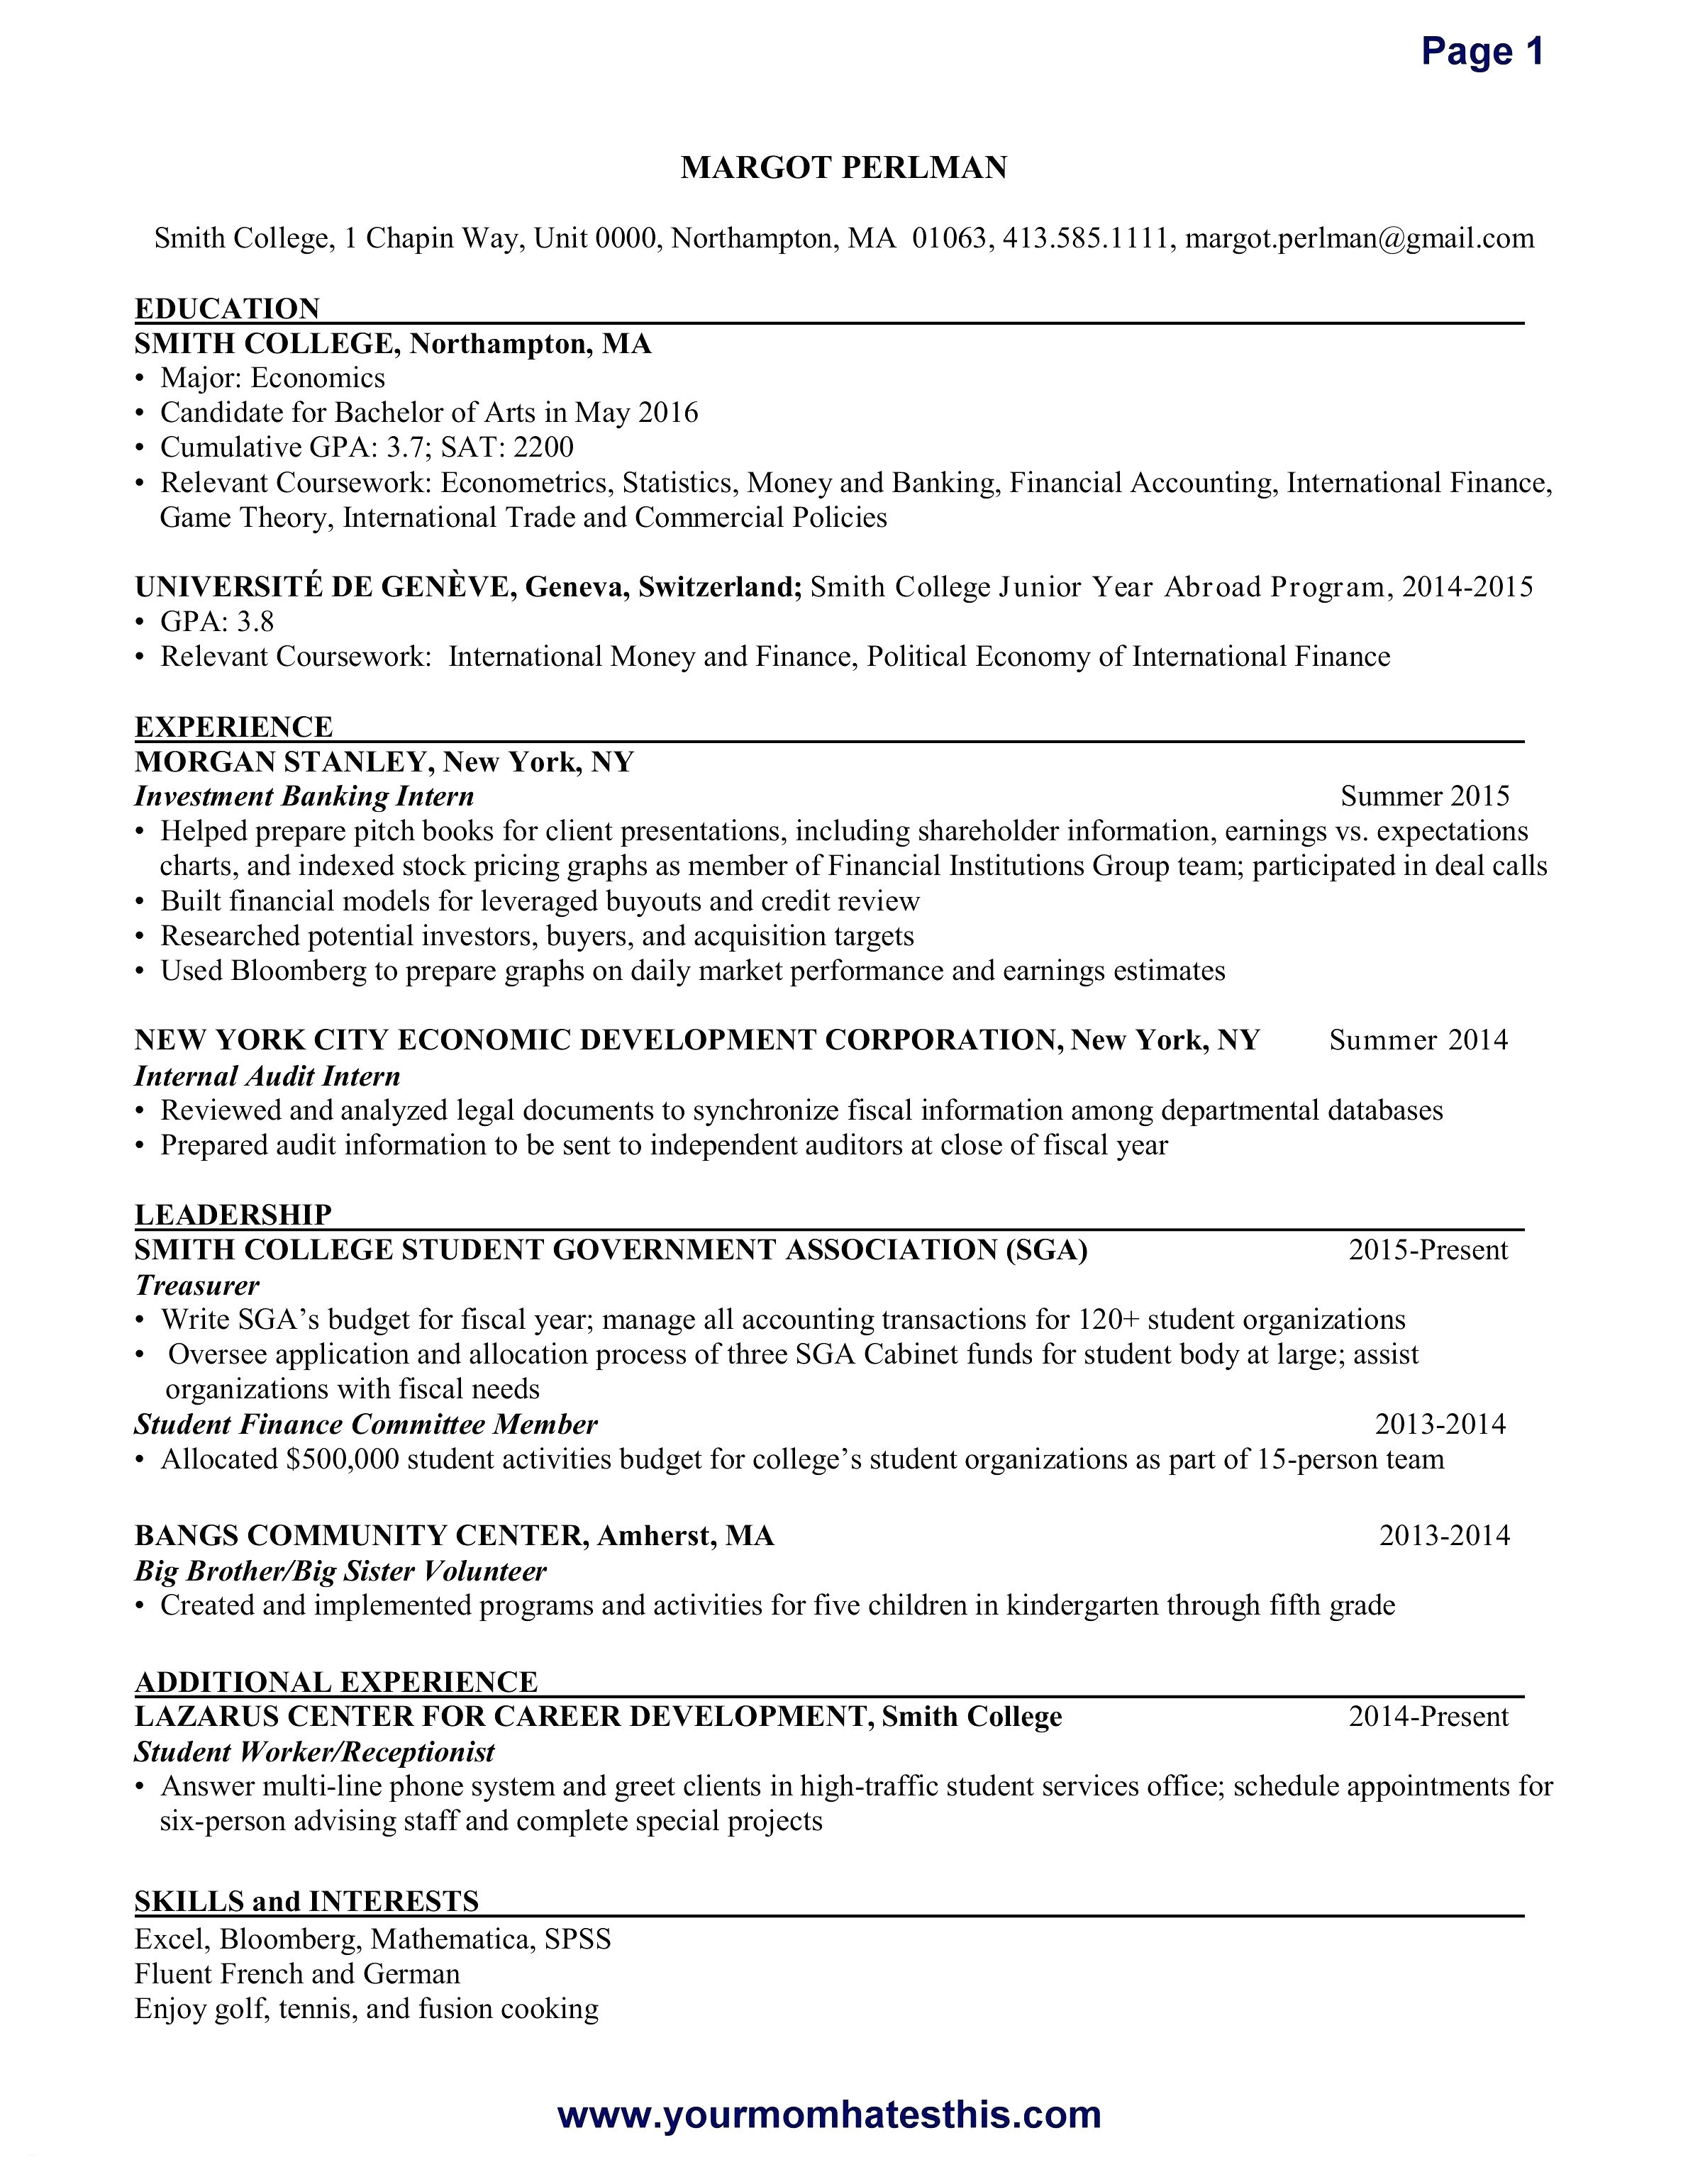 Entry Level Security Guard Resume Sample - Awesome Security Ficer Resume Sample